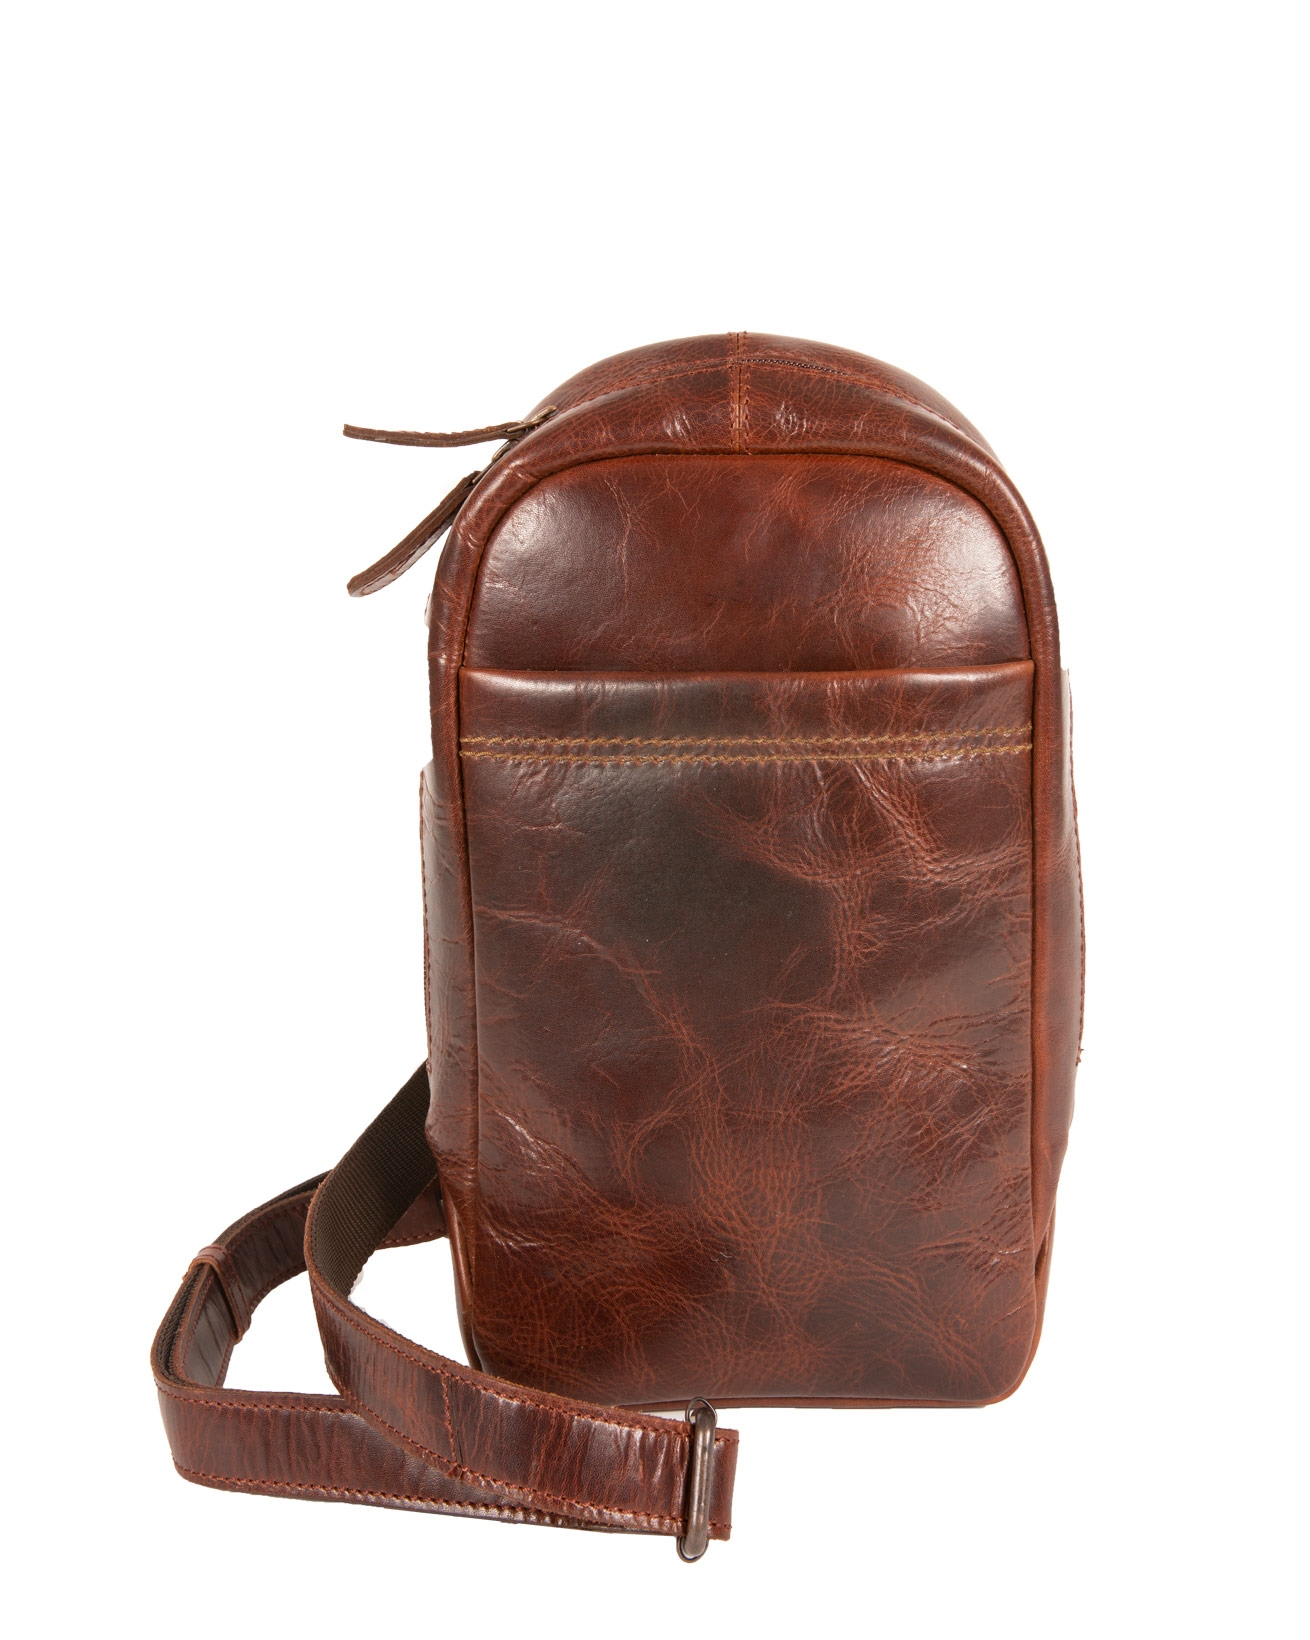 7538-burnished sling bag-chestnut-front.jpg